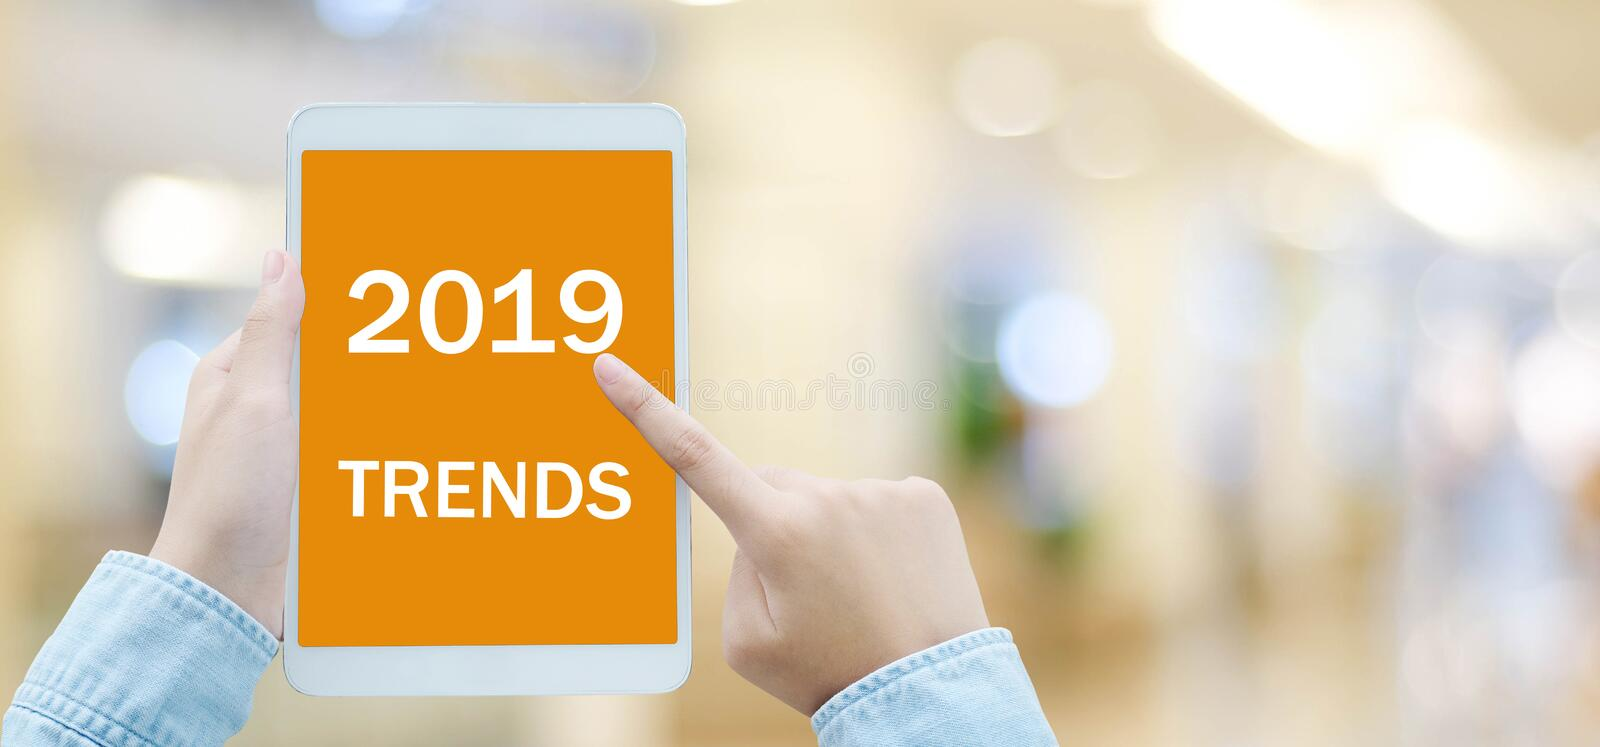 Man hand holding digital tablet with 2019 trends on screen background, digital marketing, business and technology concept. Man hand holding digital tablet with stock images